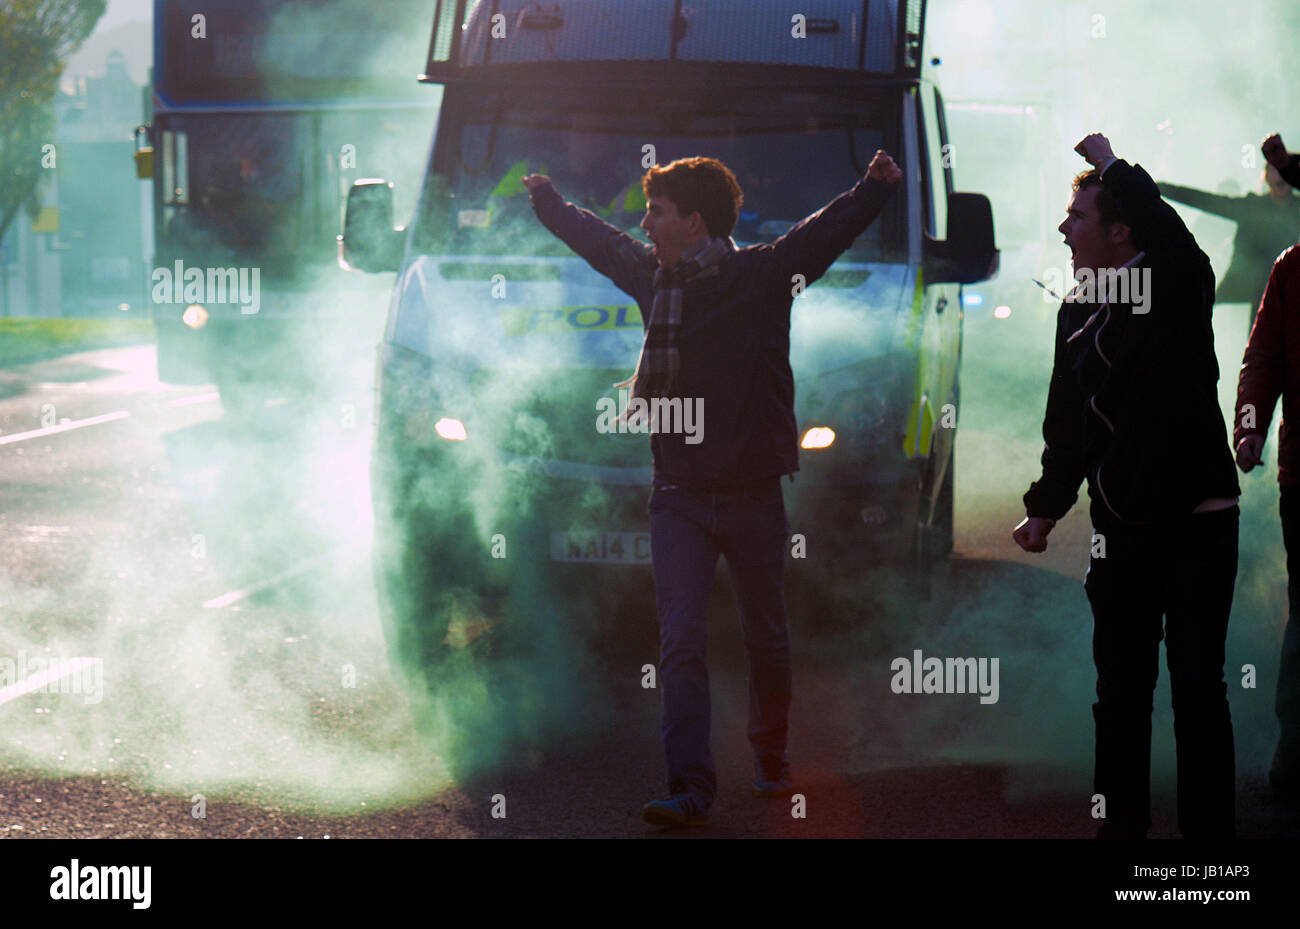 Plymouth Argyle football fans, Devon,UK Stock Photo